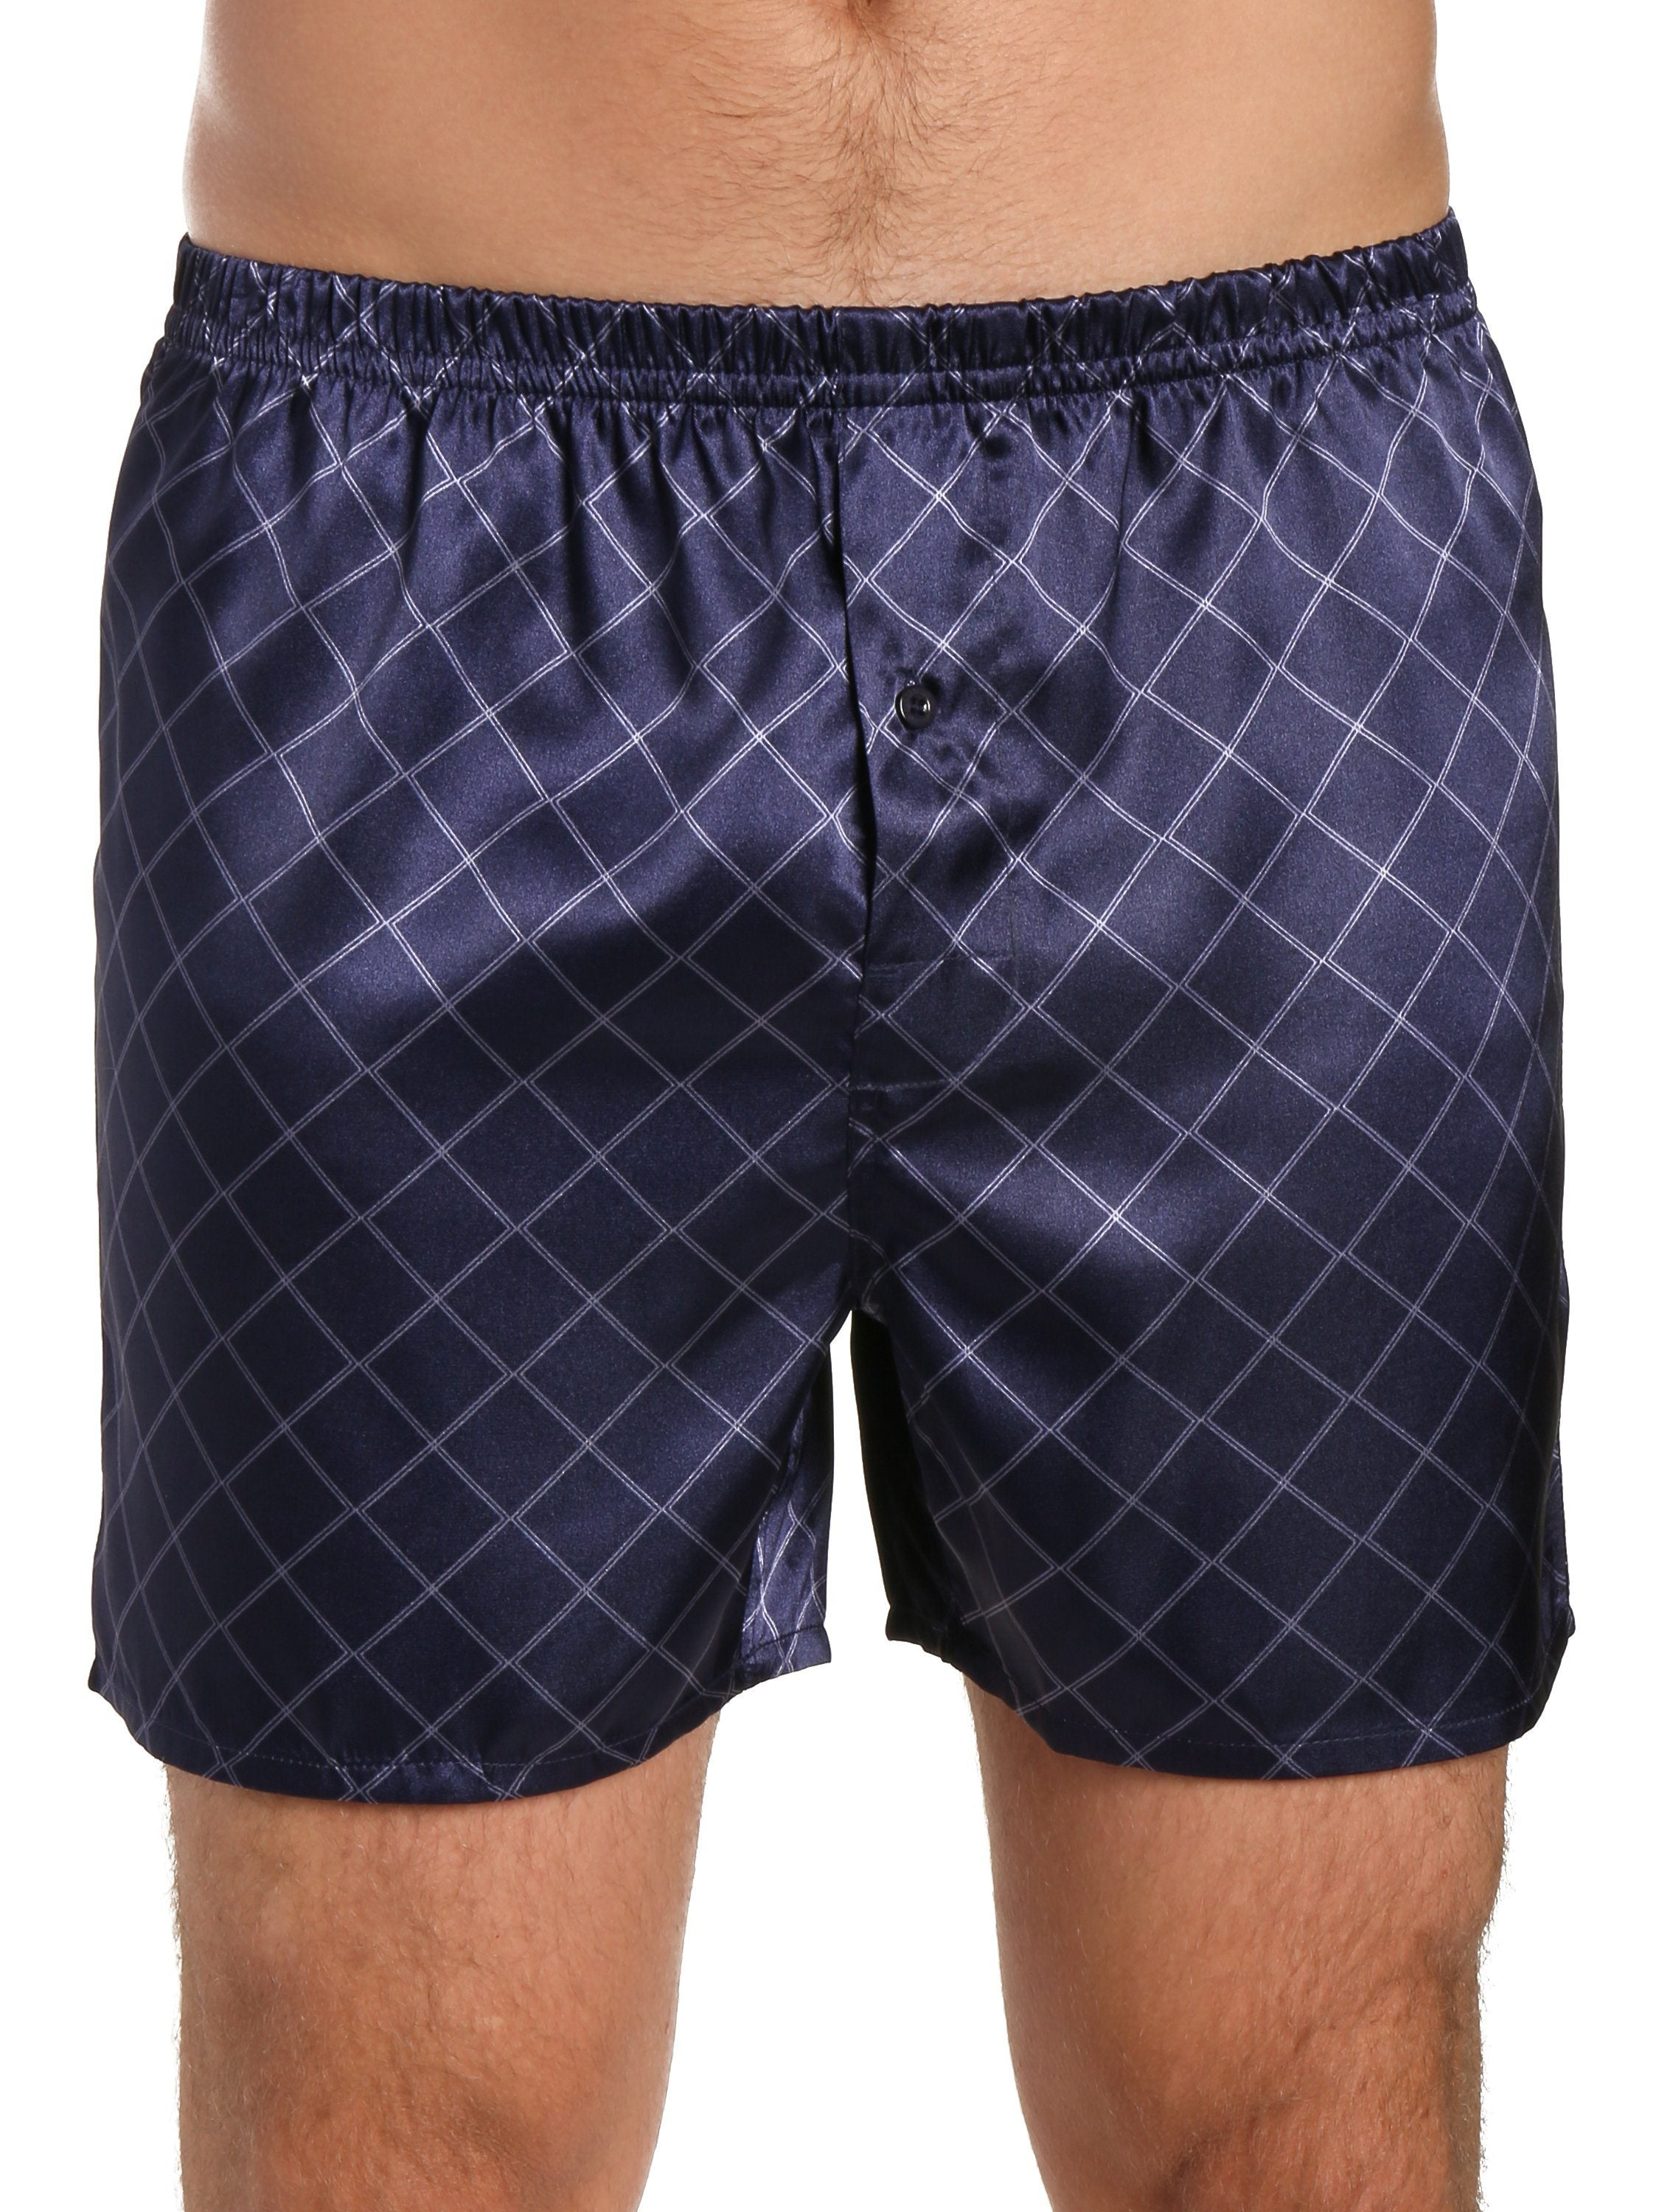 Diamond Windowpane Navy/Charcoal